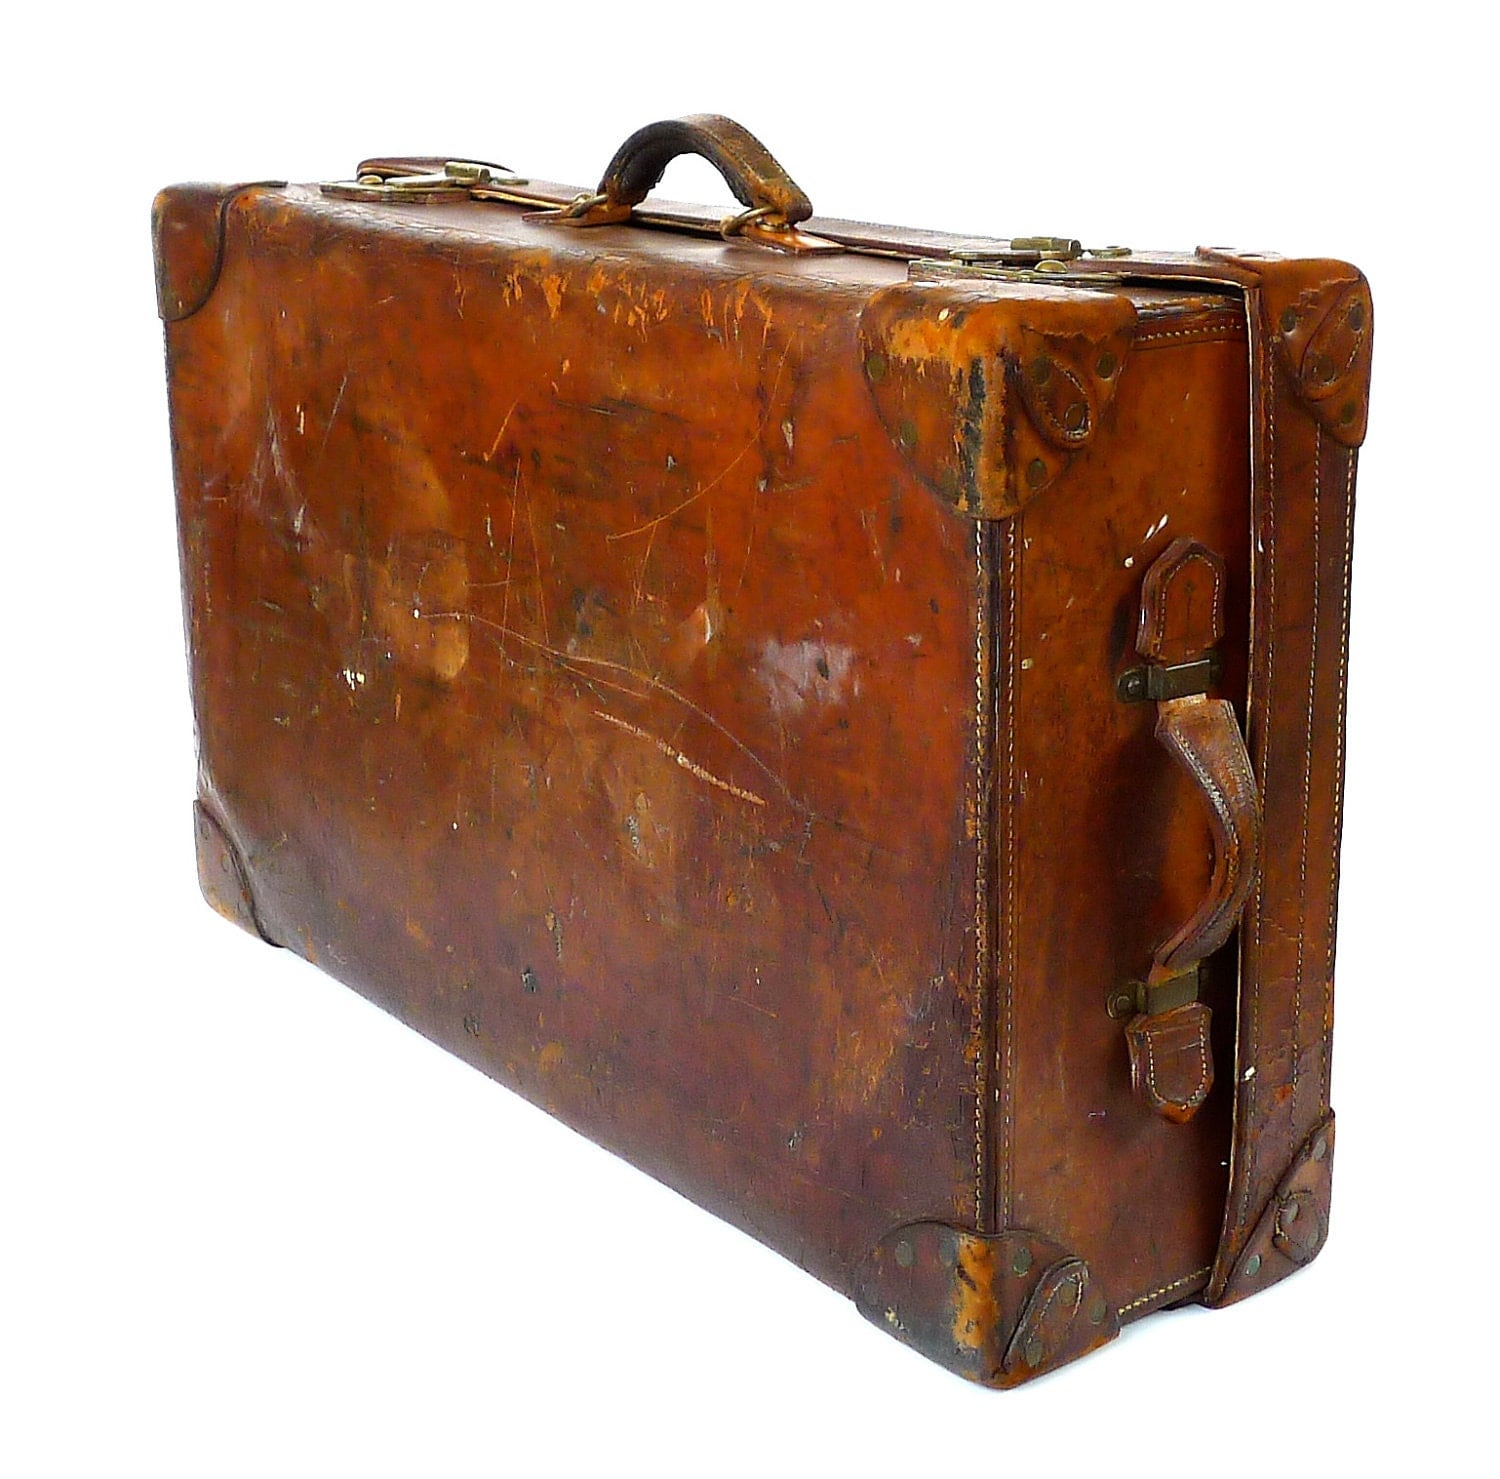 Leather Vintage Suitcase | Luggage And Suitcases